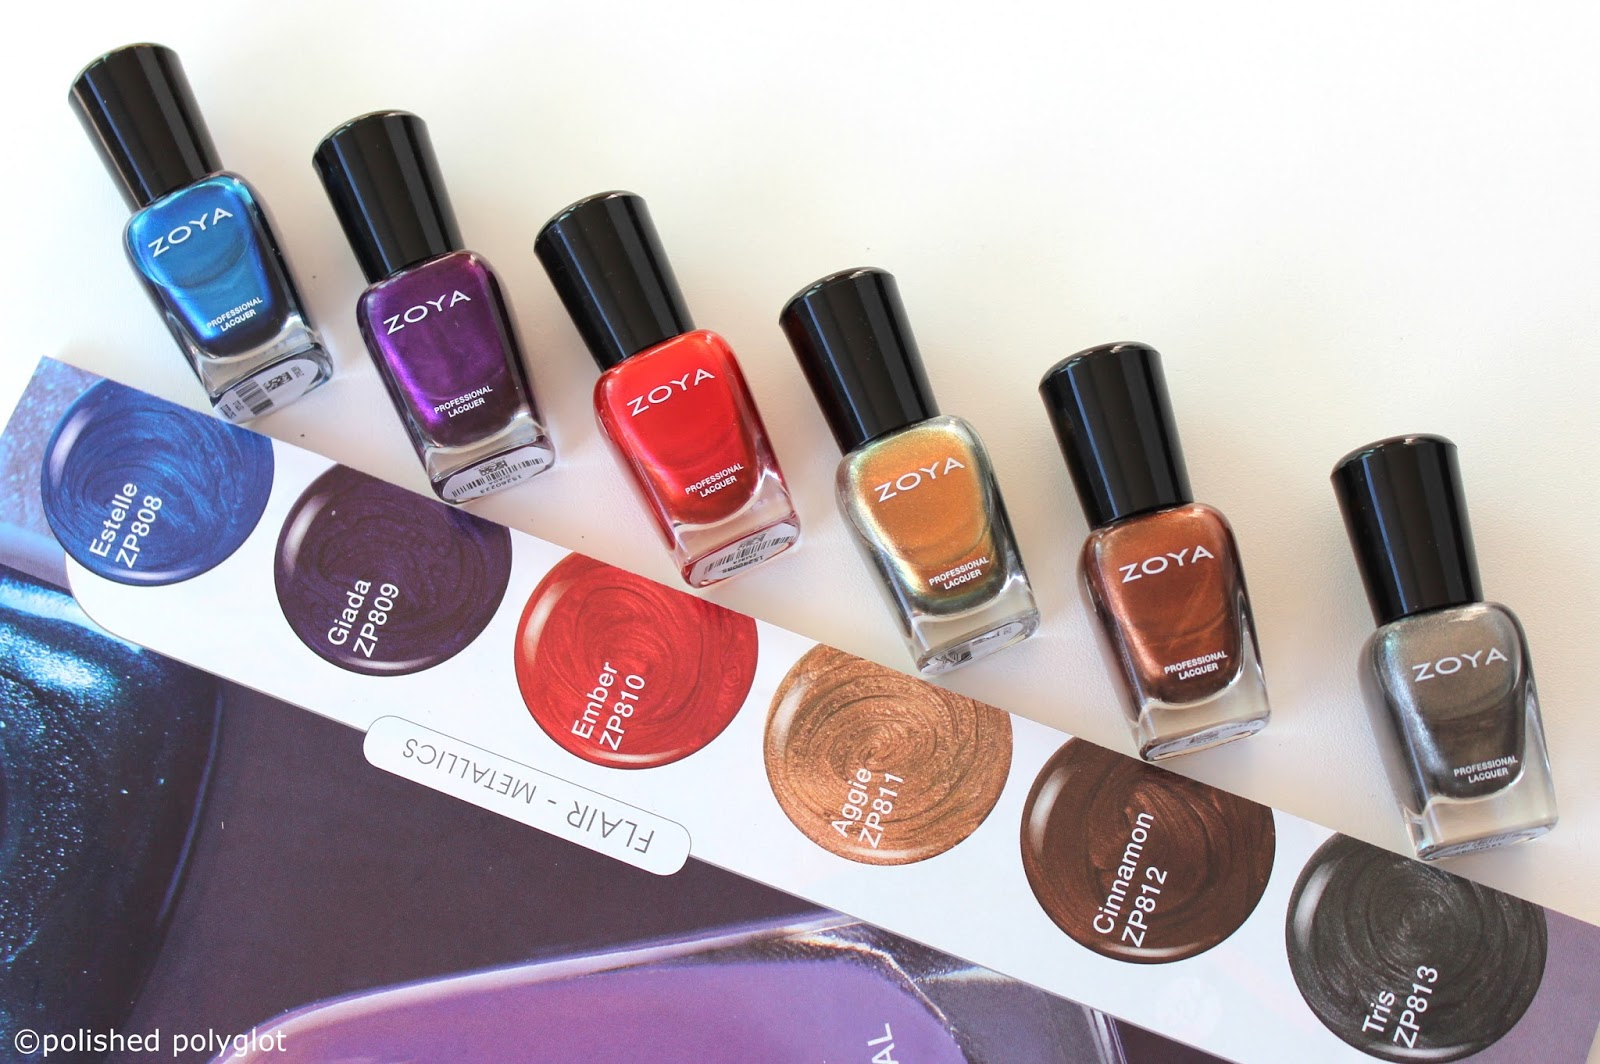 Zoya Focus & Flair collections for Winter 2015-2016 / Polished Polyglot